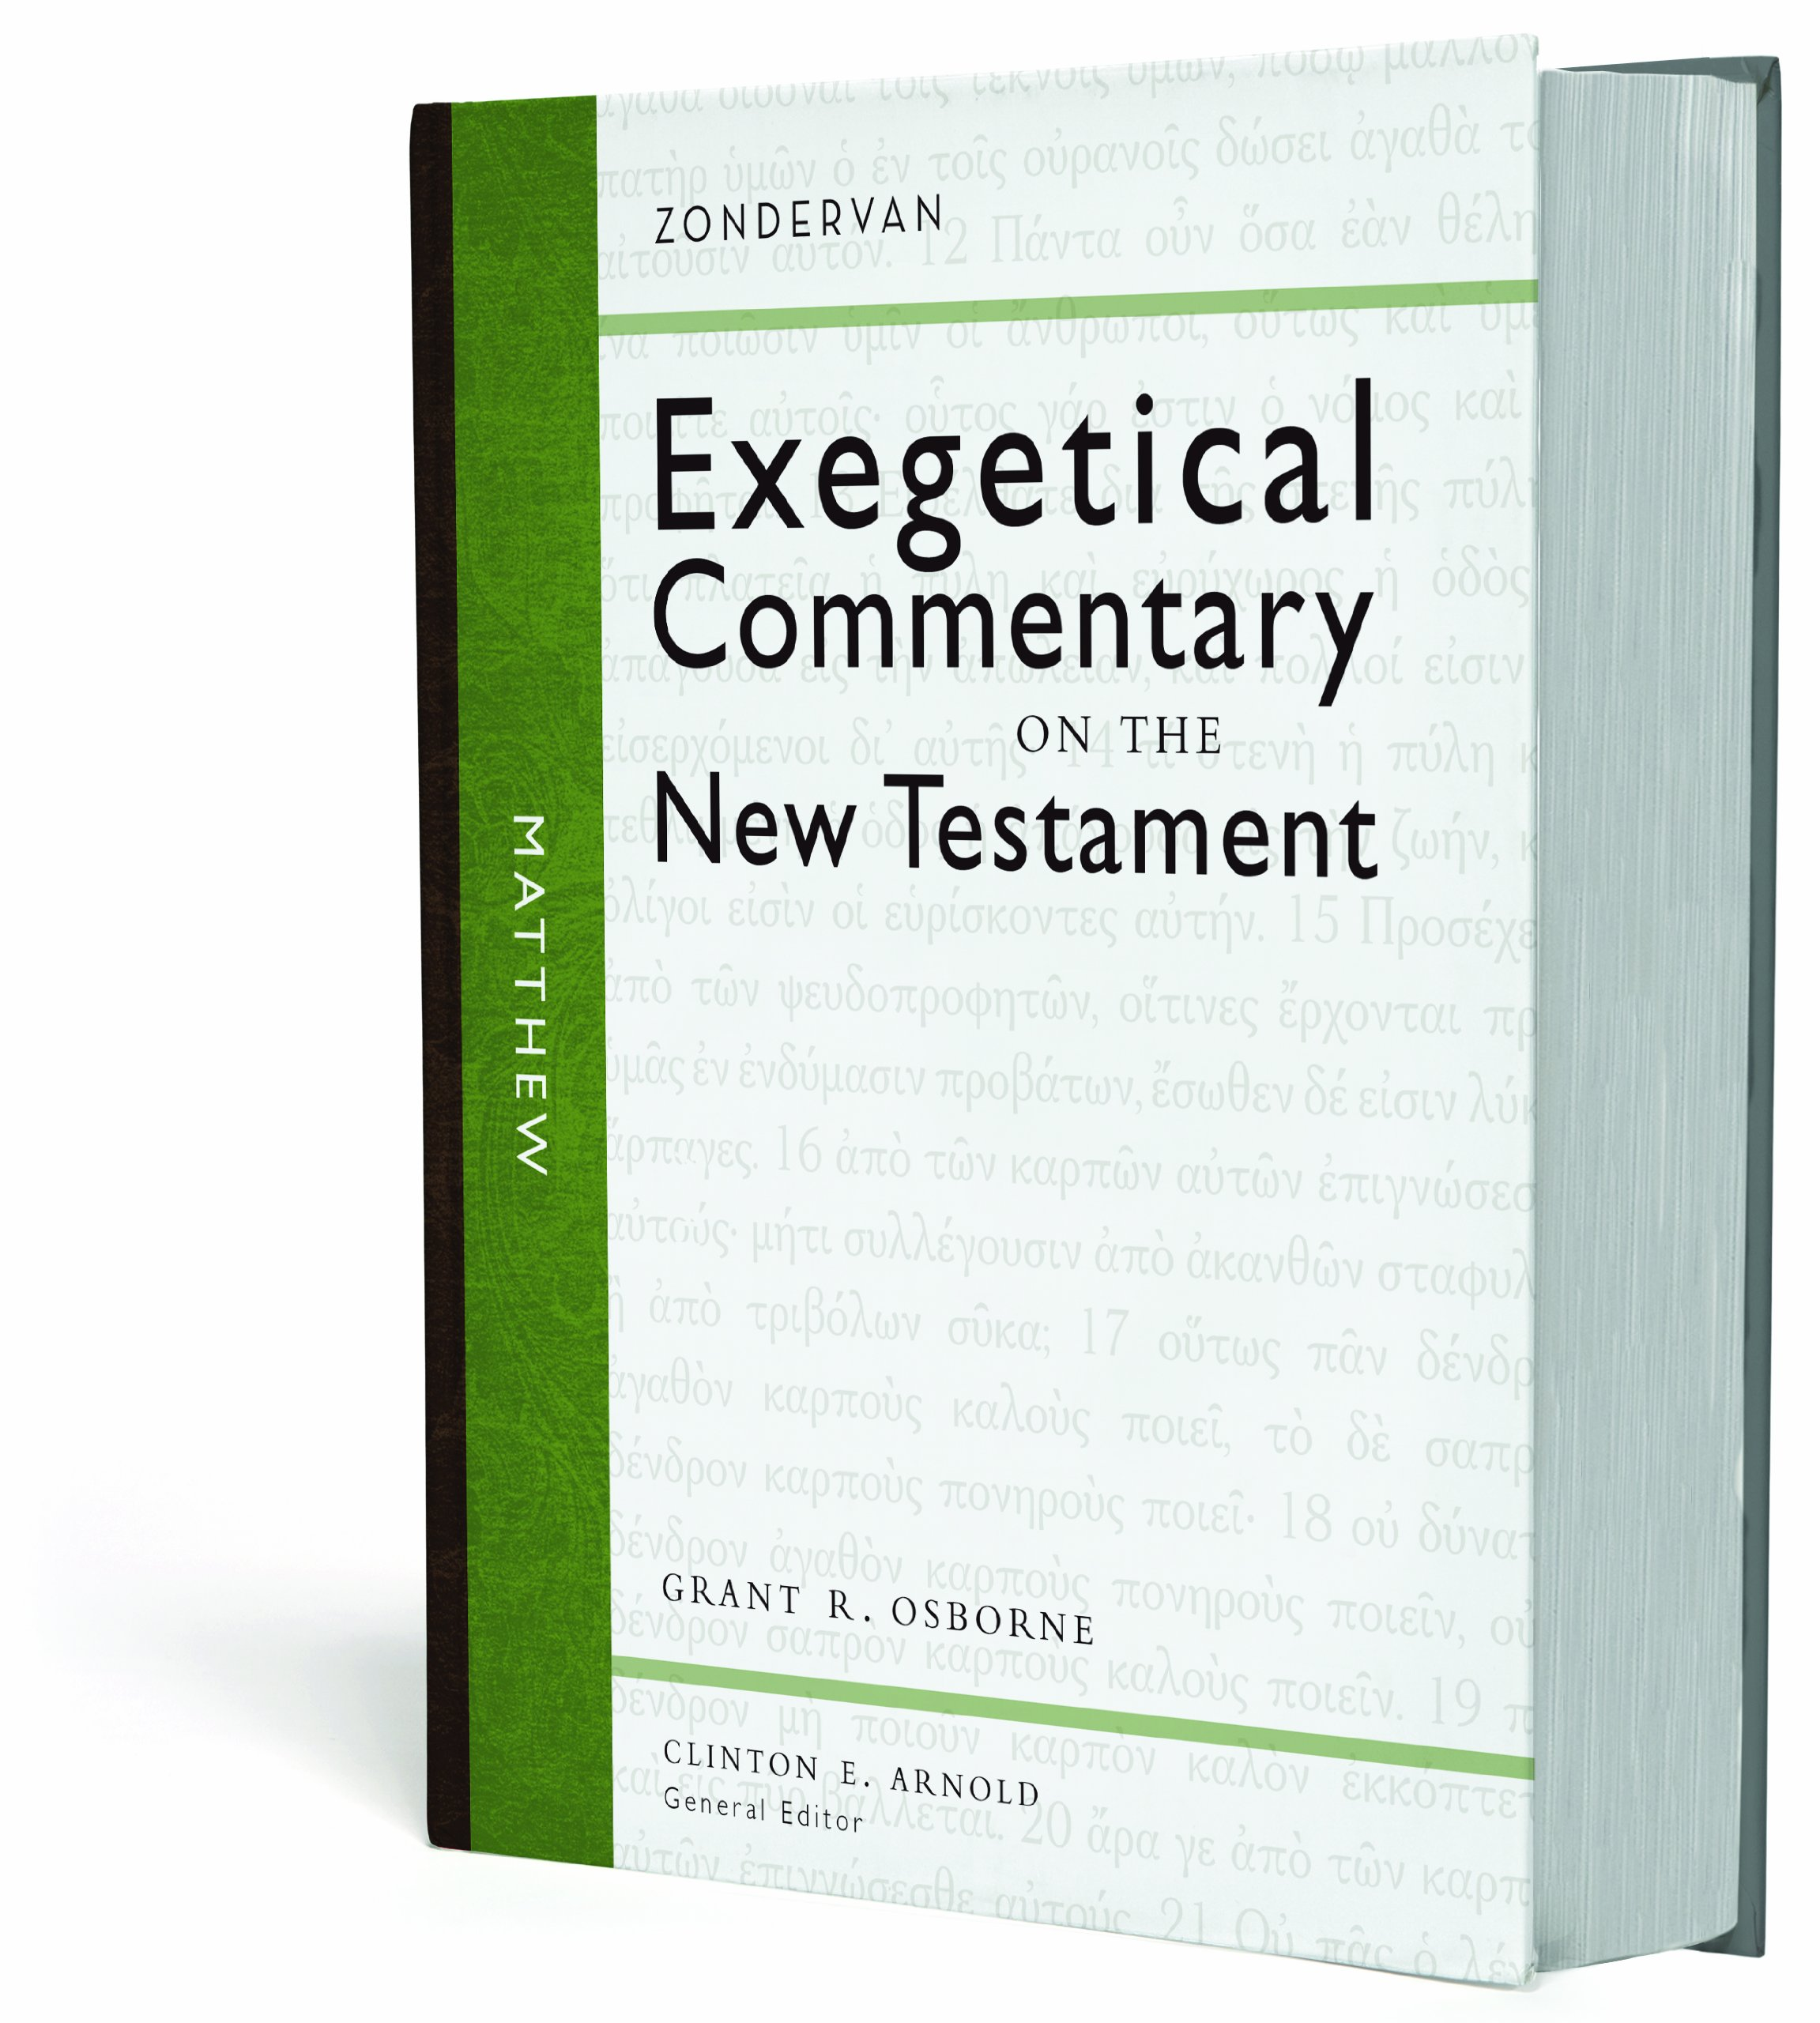 e8213b0756bd Matthew (Zondervan Exegetical Commentary on the New Testament)  Grant R.  Osborne